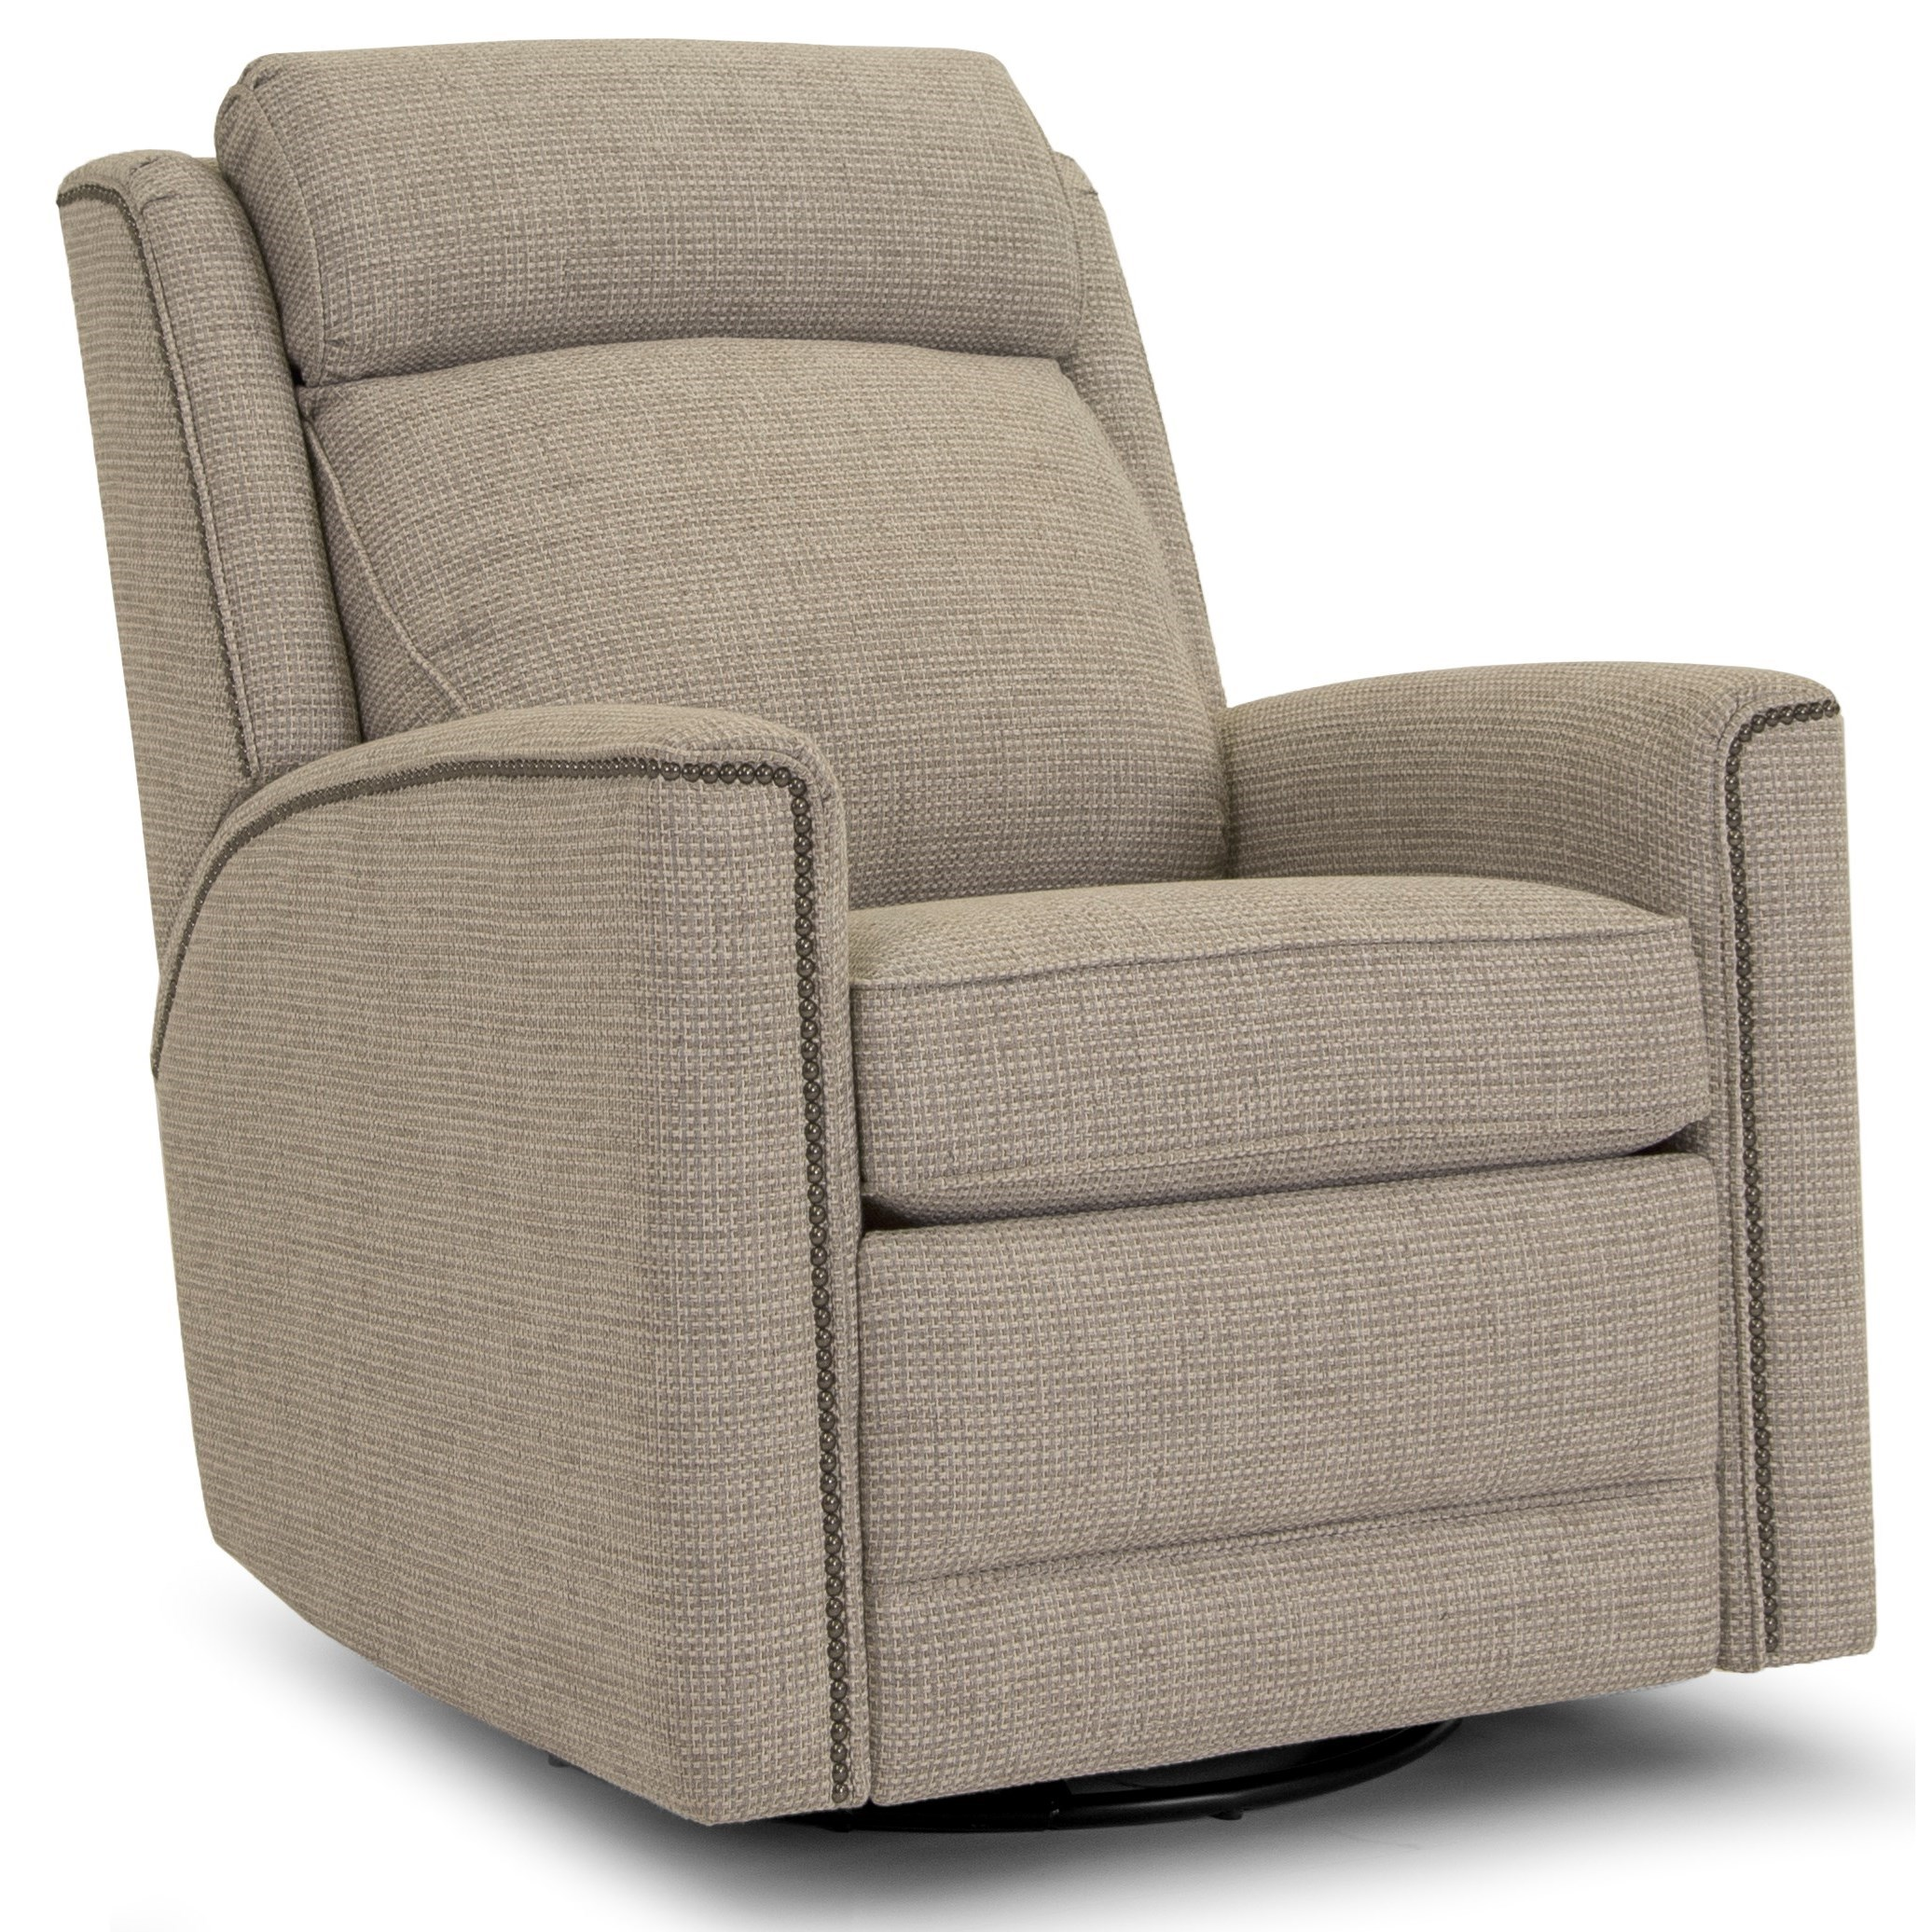 736 Power Recliner by Smith Brothers at Saugerties Furniture Mart